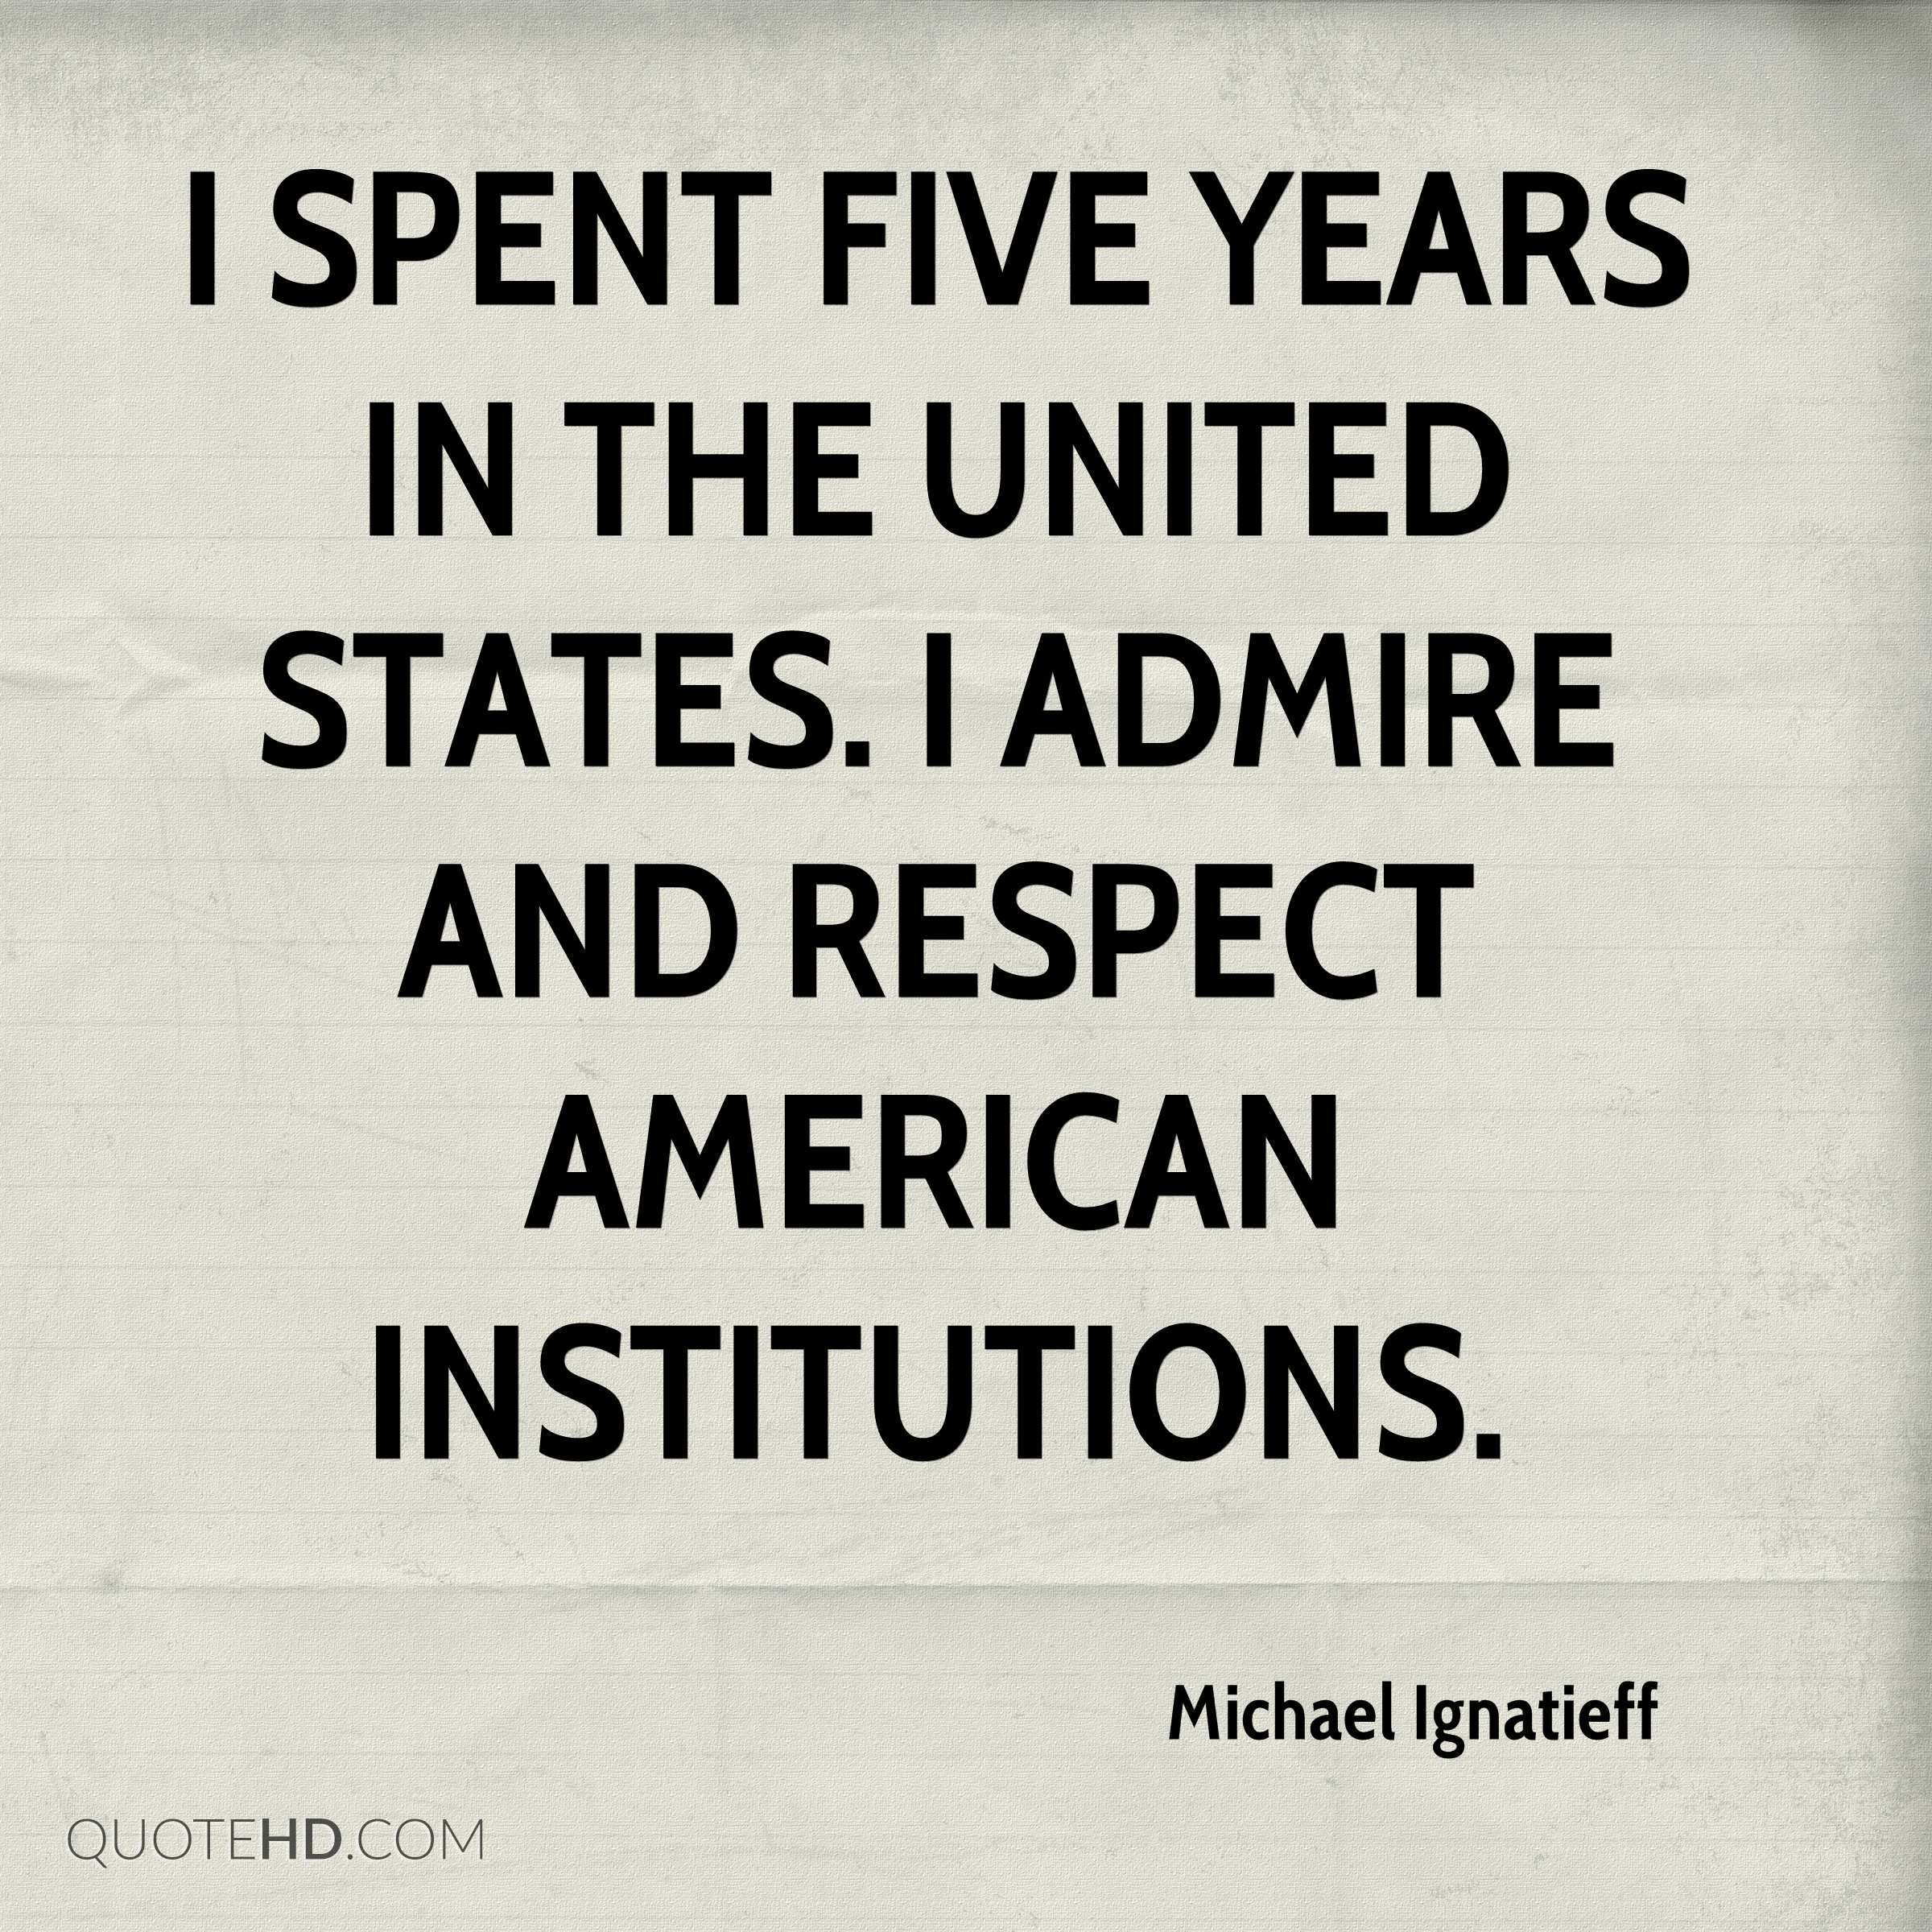 I spent five years in the United States. I admire and respect American institutions.